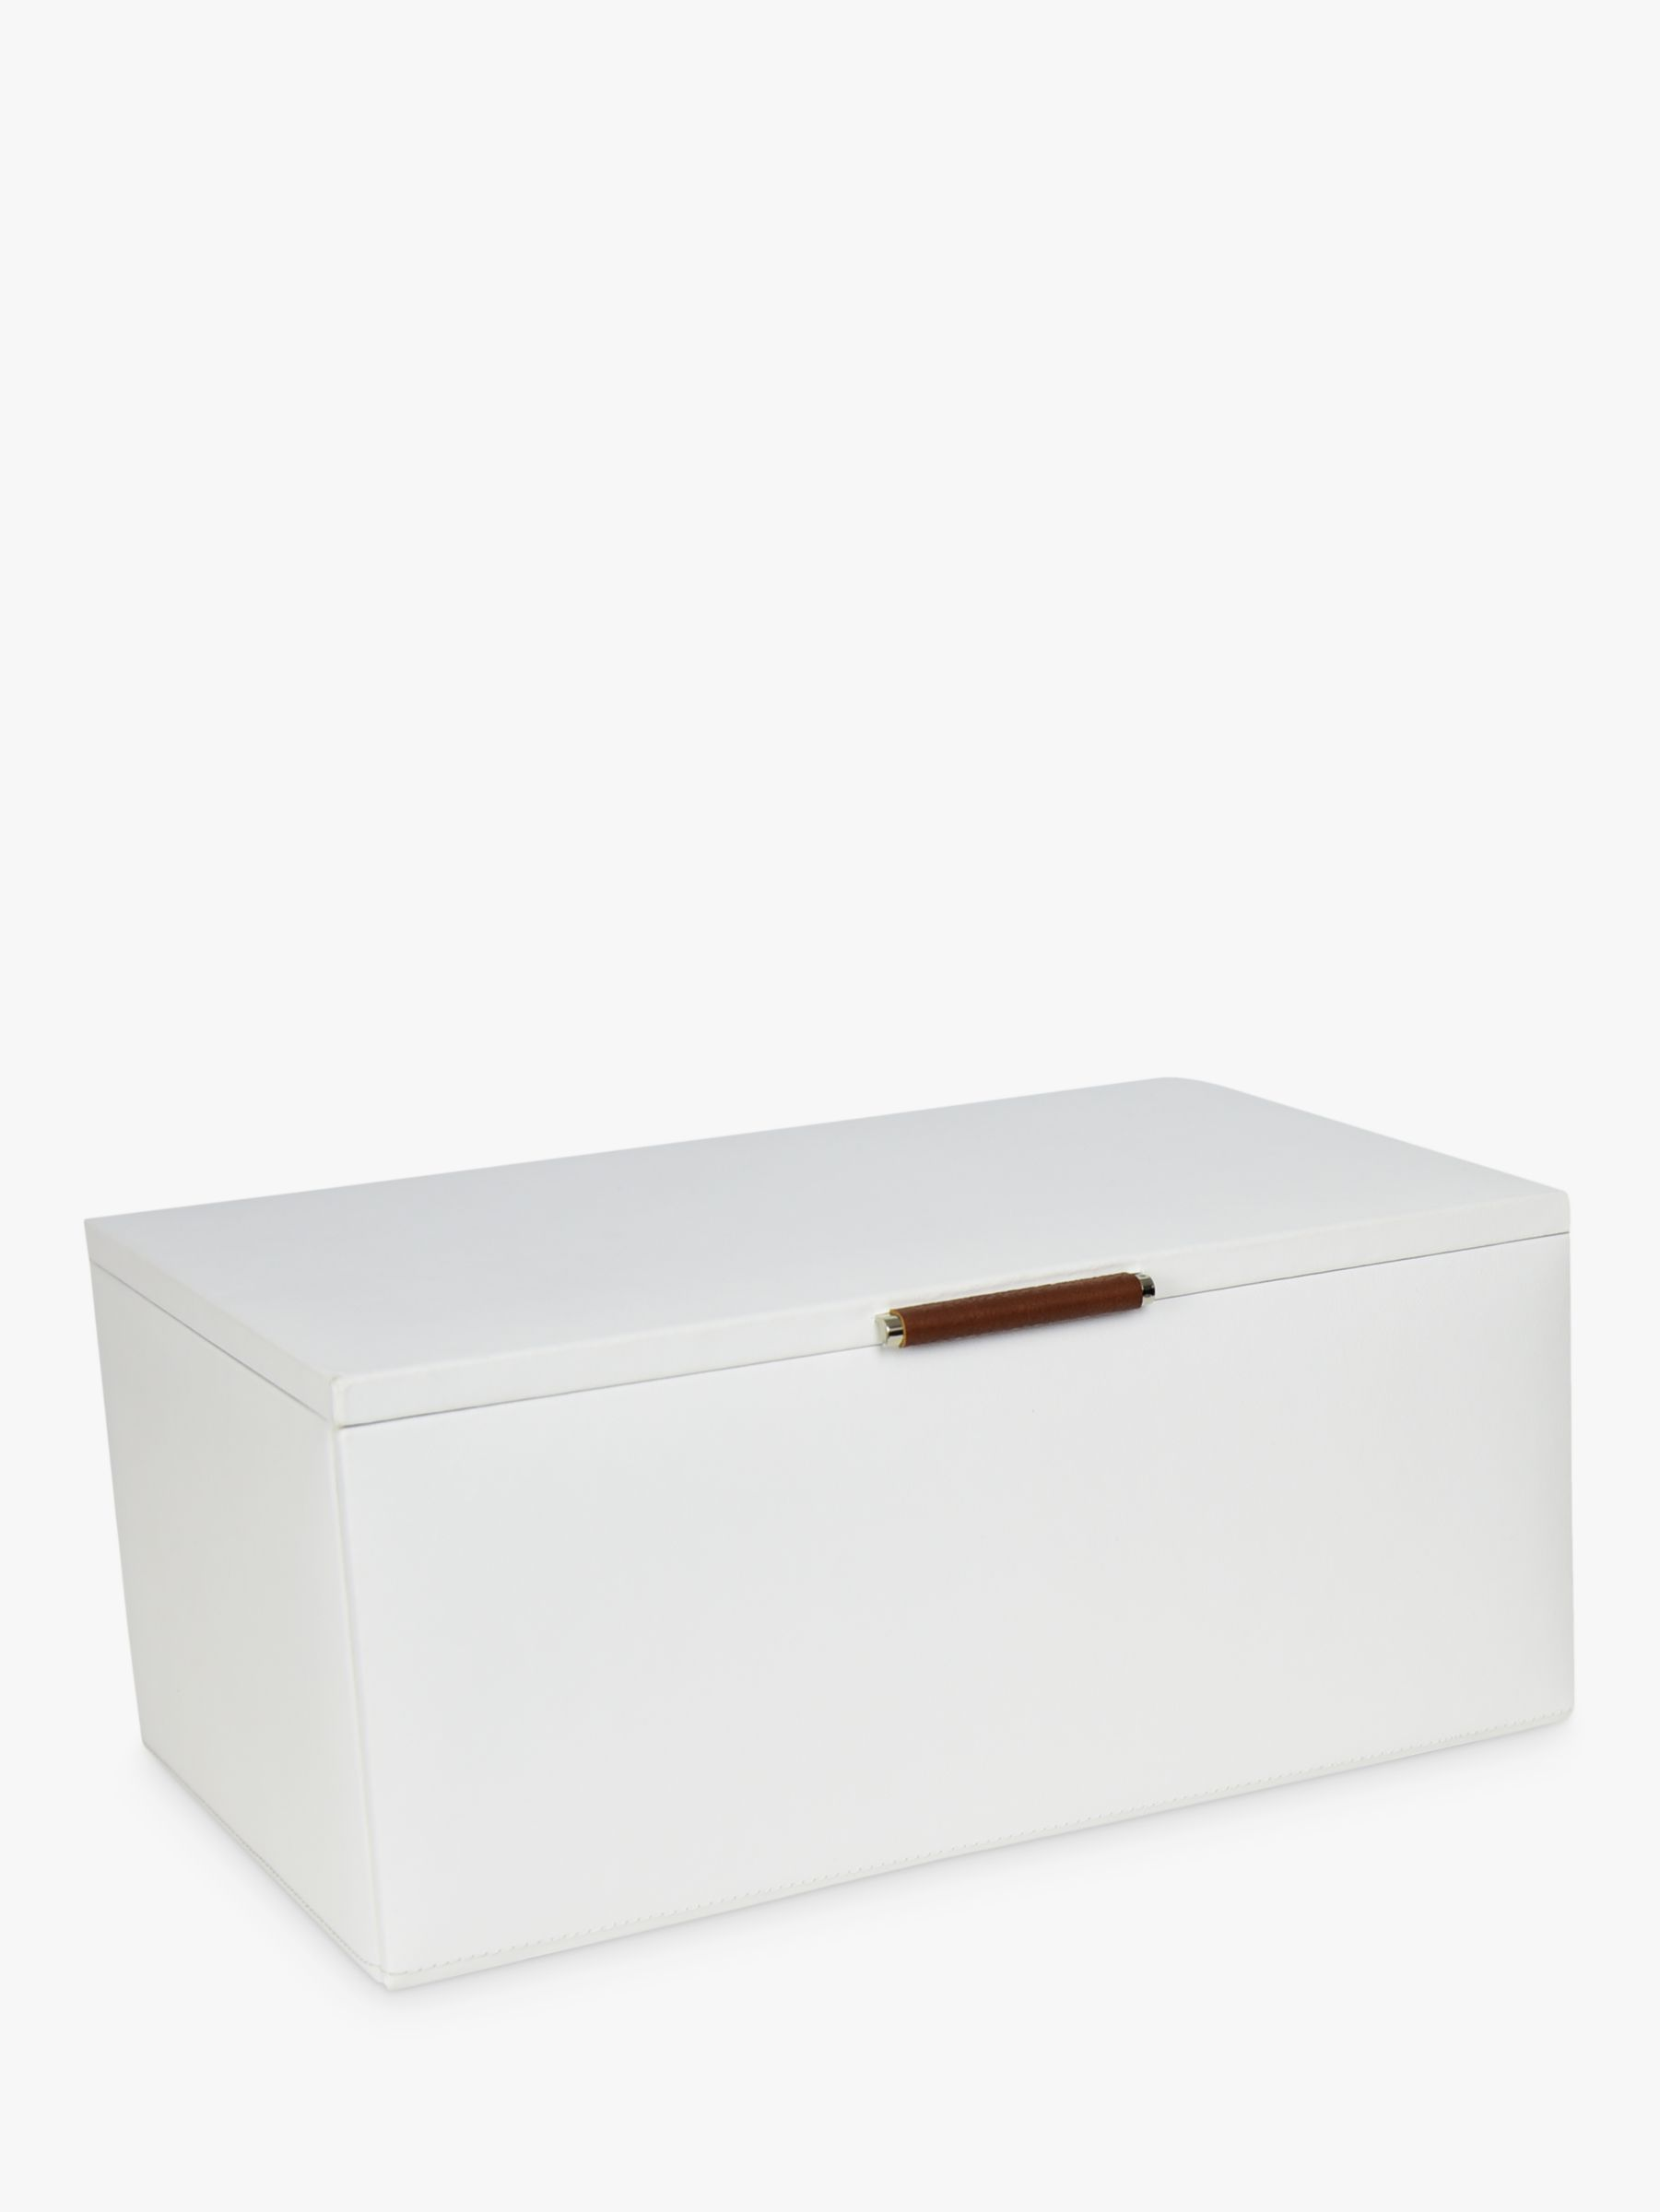 Dulwich Designs Dulwich Designs Malmo Extra Large Jewellery Box, White